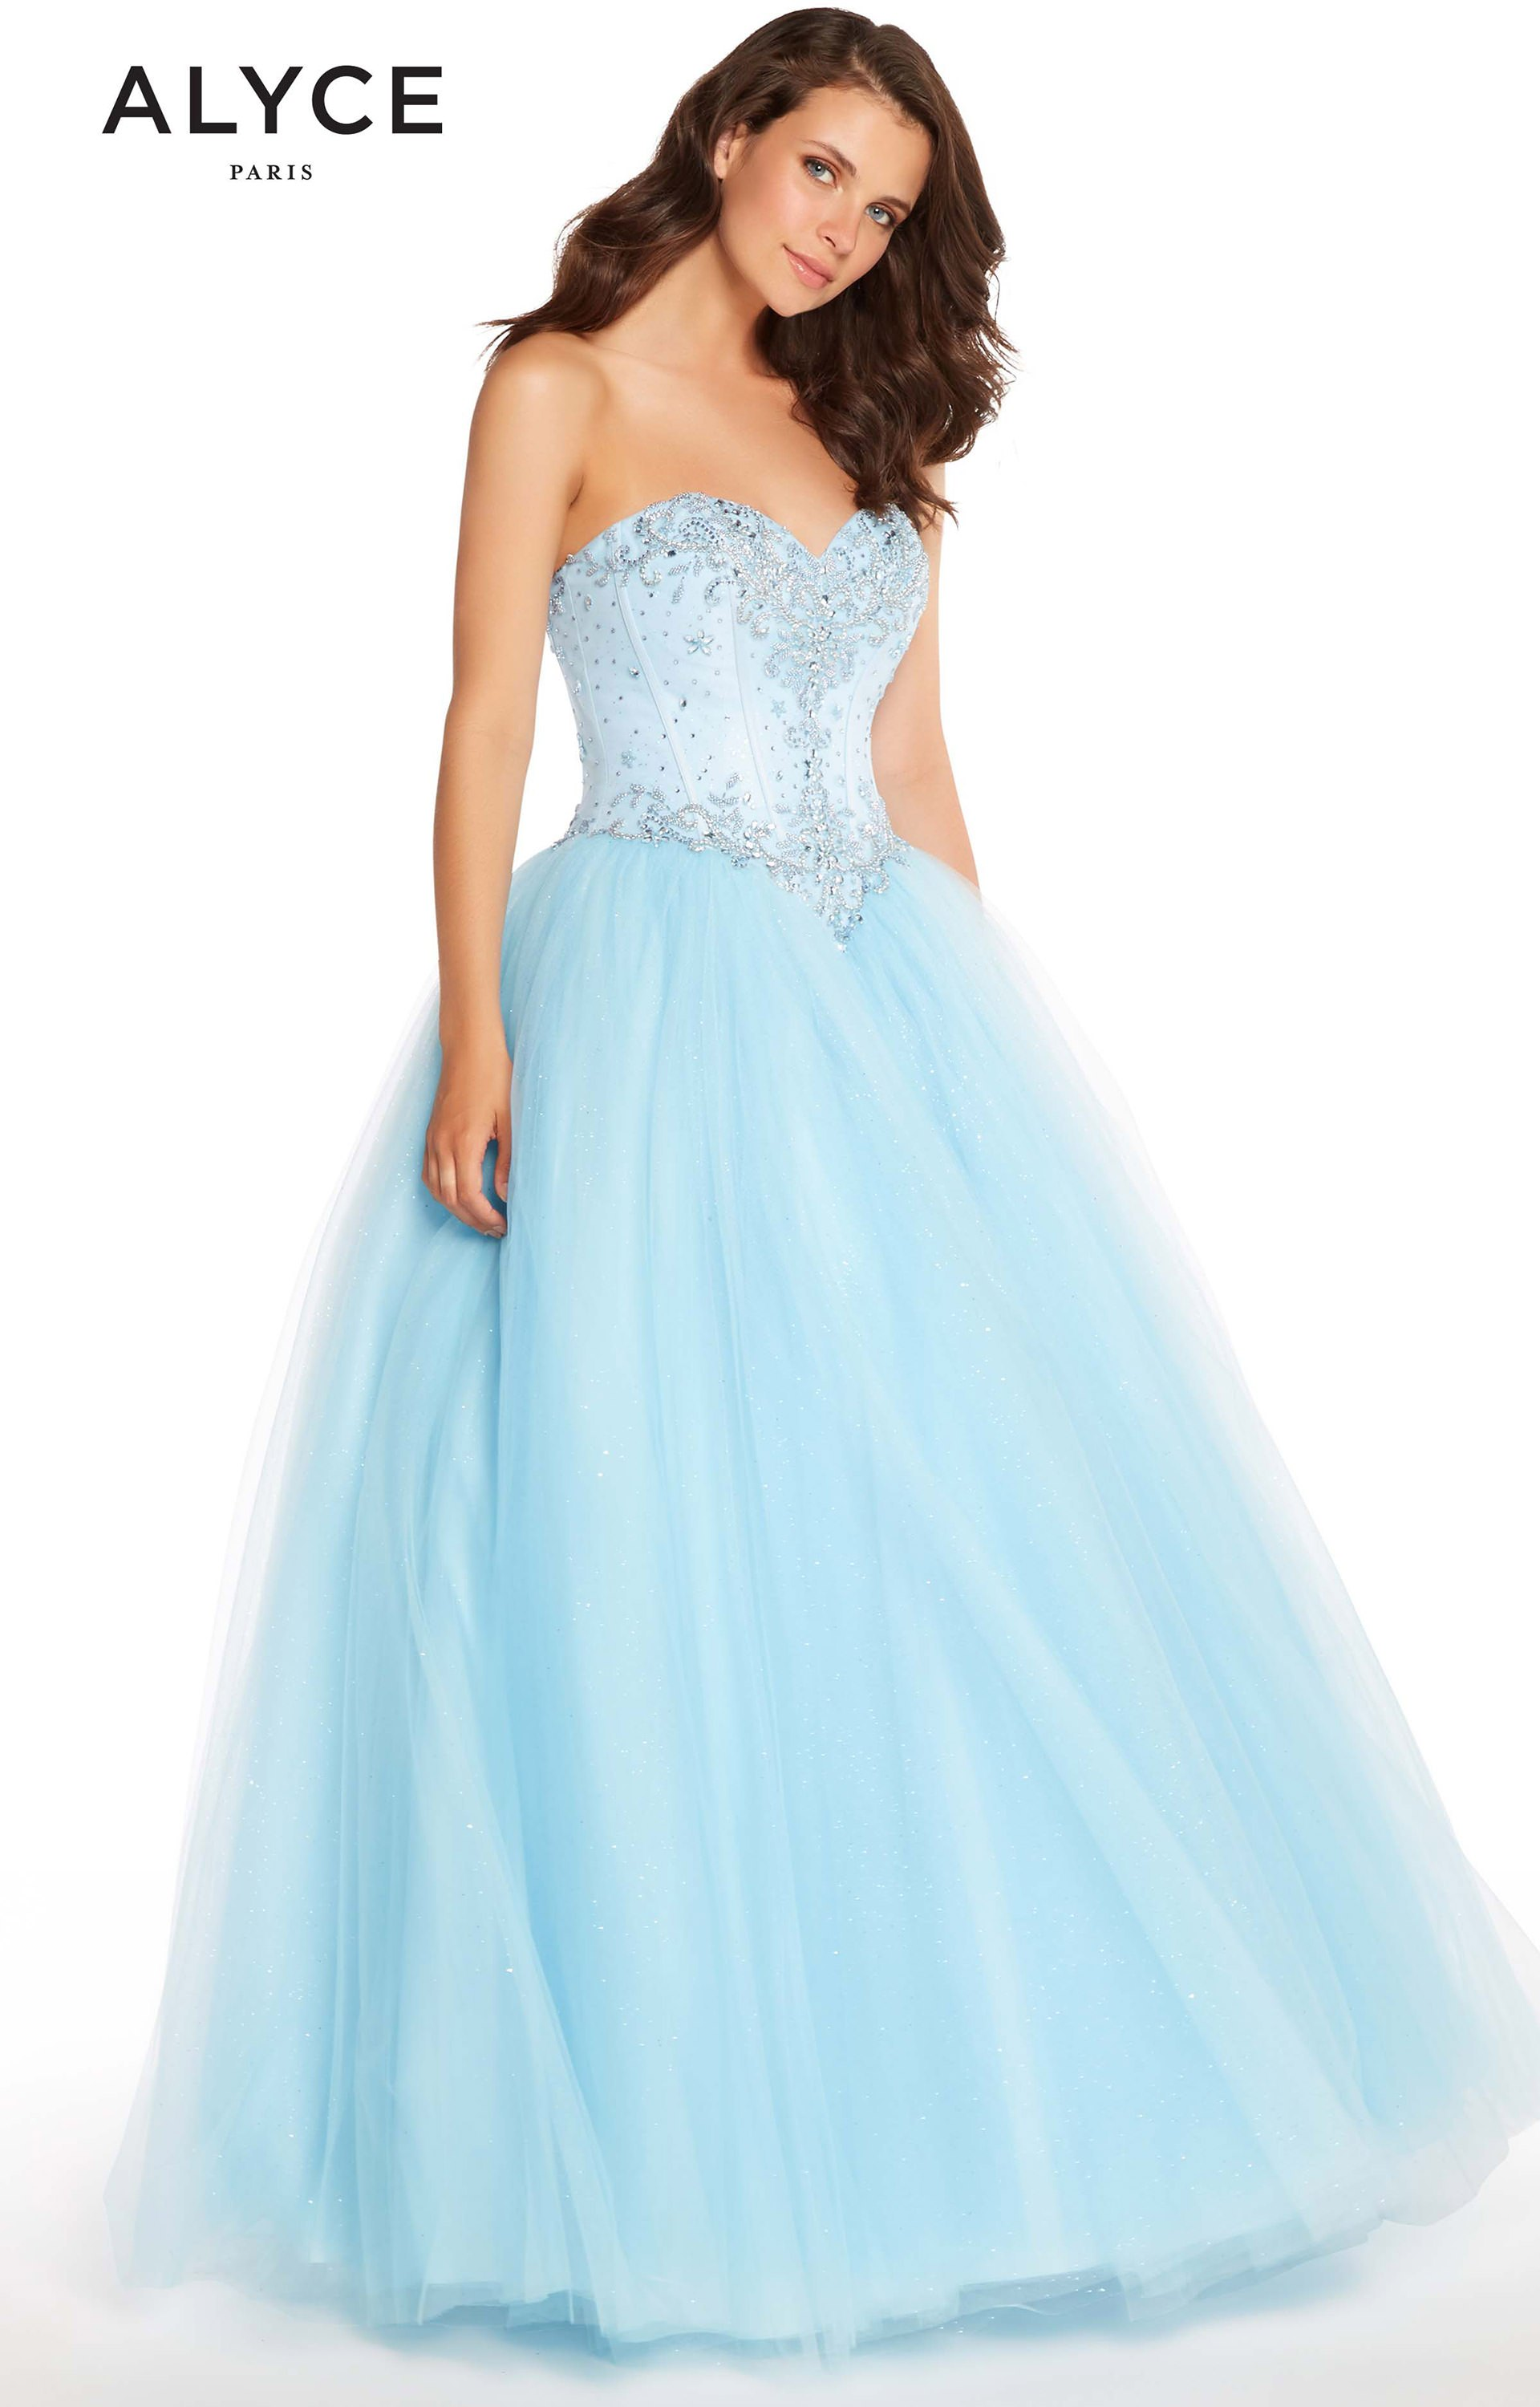 Alyce Paris 60201 - Strapless Sweetheart Sparkle Tulle Ball Gown ...